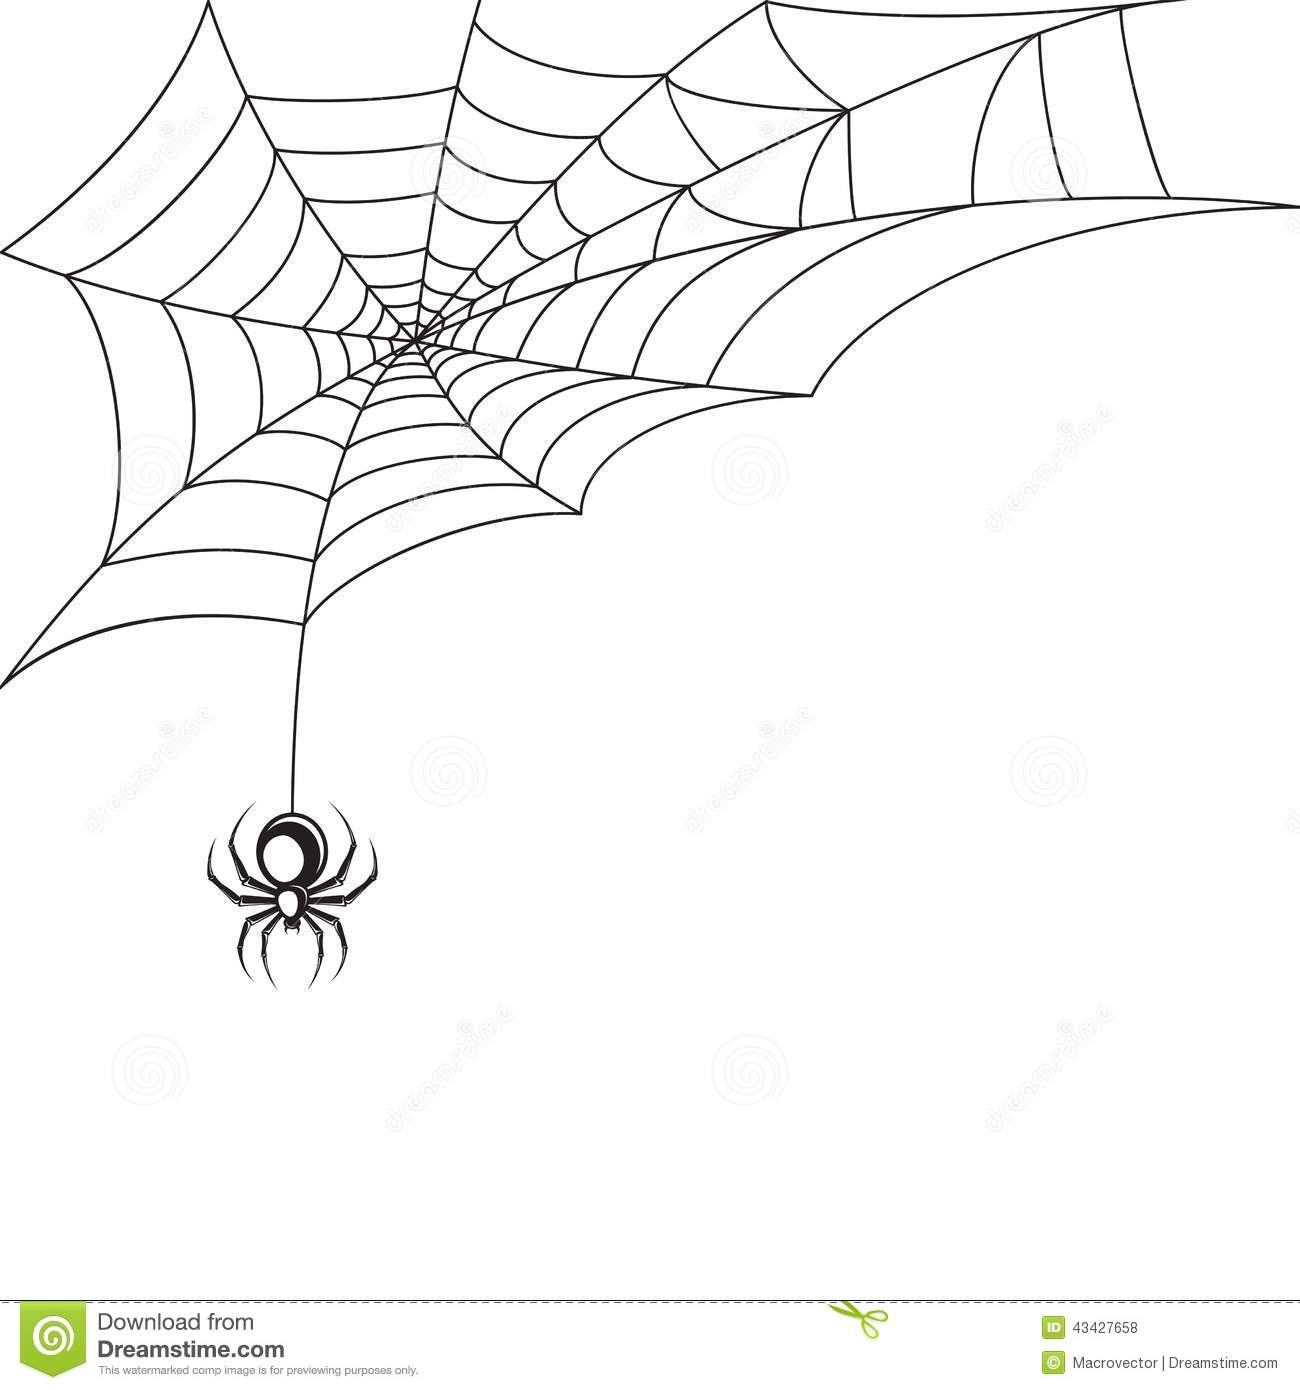 510078 Cute Cartoon Anime Gif as well Stock Illustration Spider Web Wallpaper Poisonous Halloween Symbol Template Vector Illustration Image43427658 together with Halloween Pumpkin Clipart Black And White 10053 besides Halloween Pumpkin Clipart Black And White 10053 additionally Wings. on scary backgrounds art